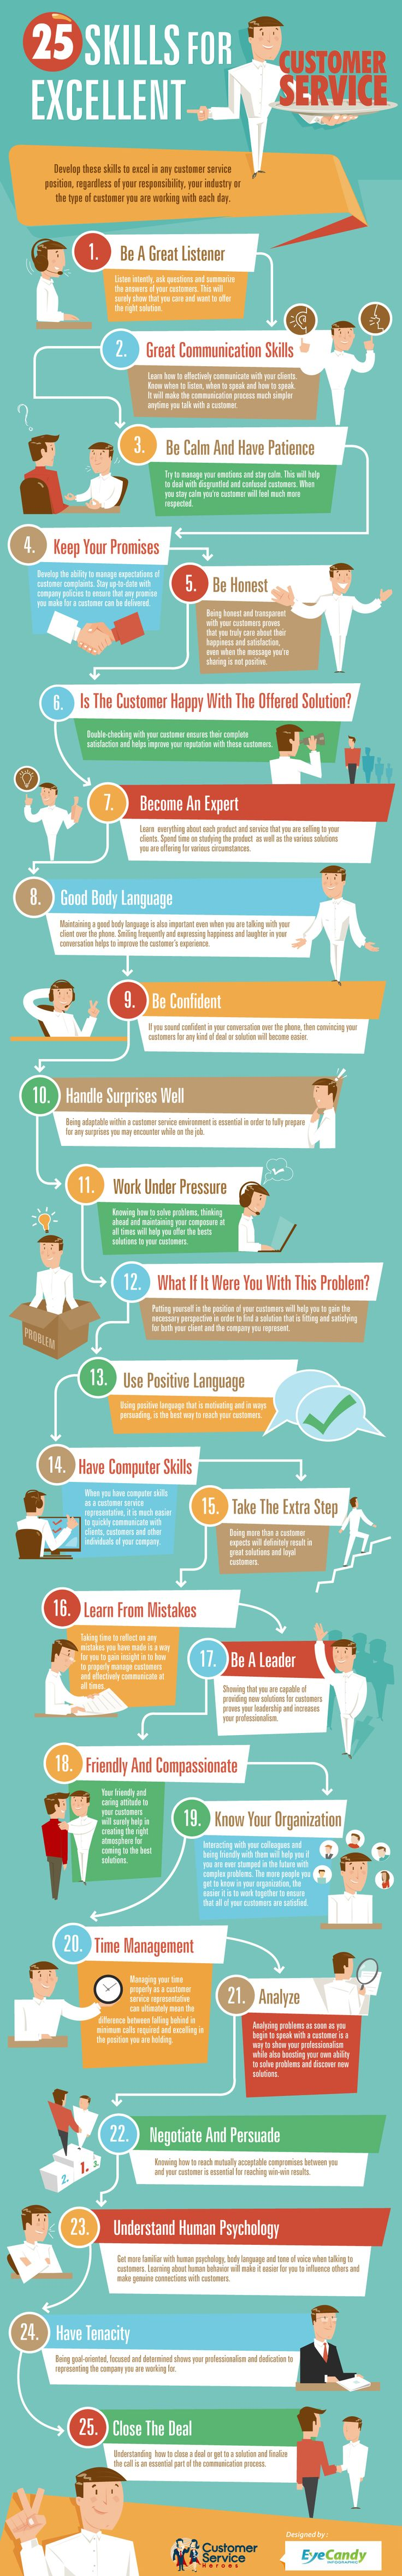 25 Skills Required For Excellent Customer Service - #Infographic via #BornToBeSocial